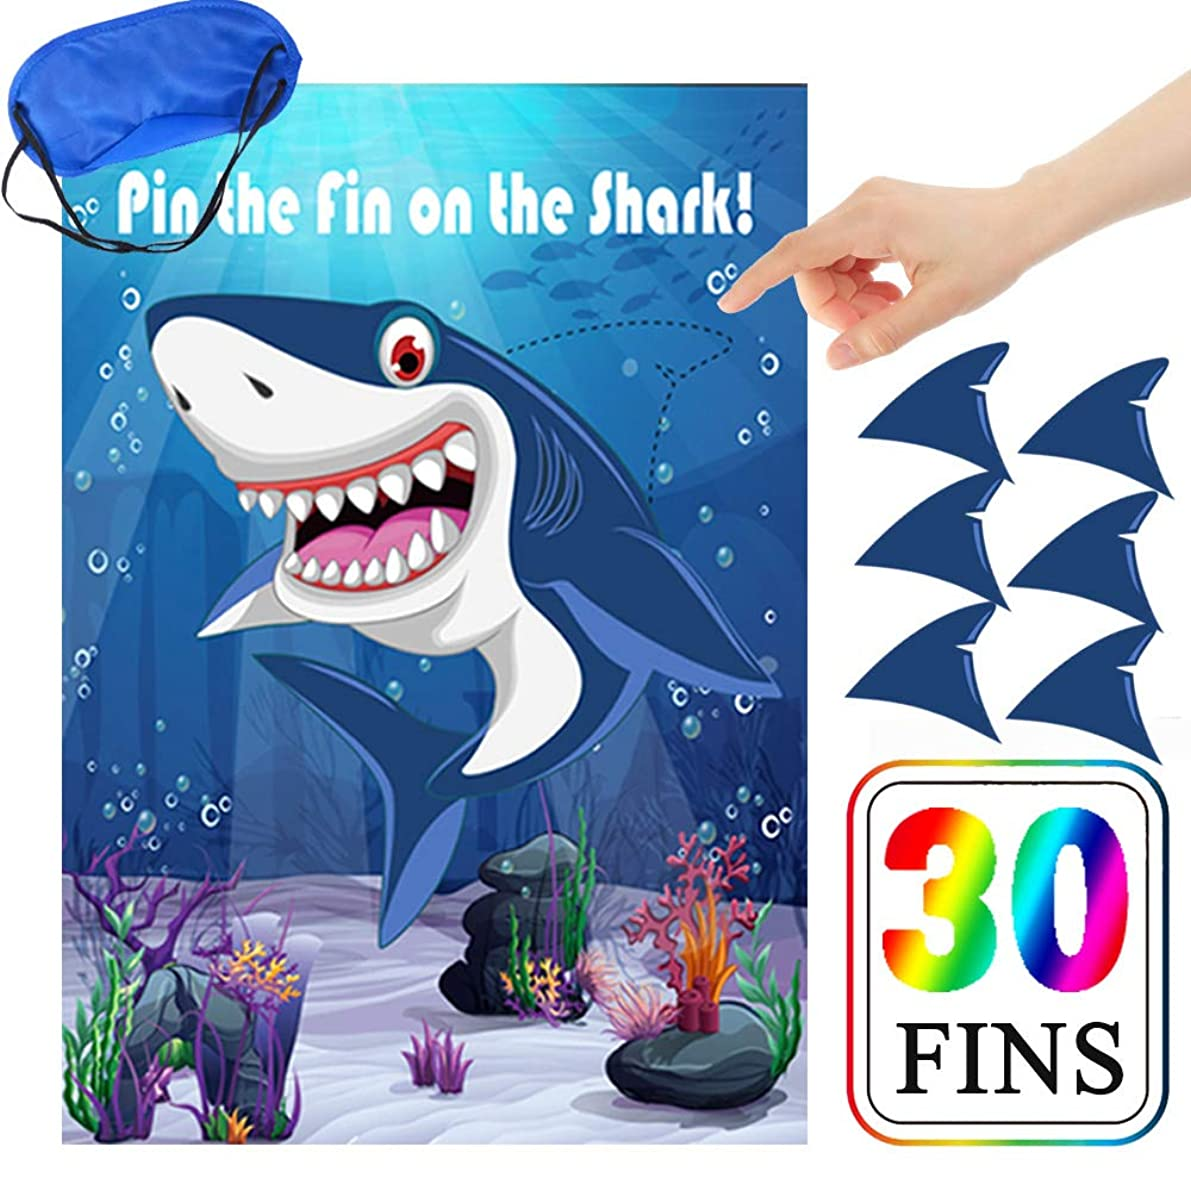 Pin The Fin On The Shark Games Kids Baby Shark Birthday Party Supplies Decorations Game - 30 Fins